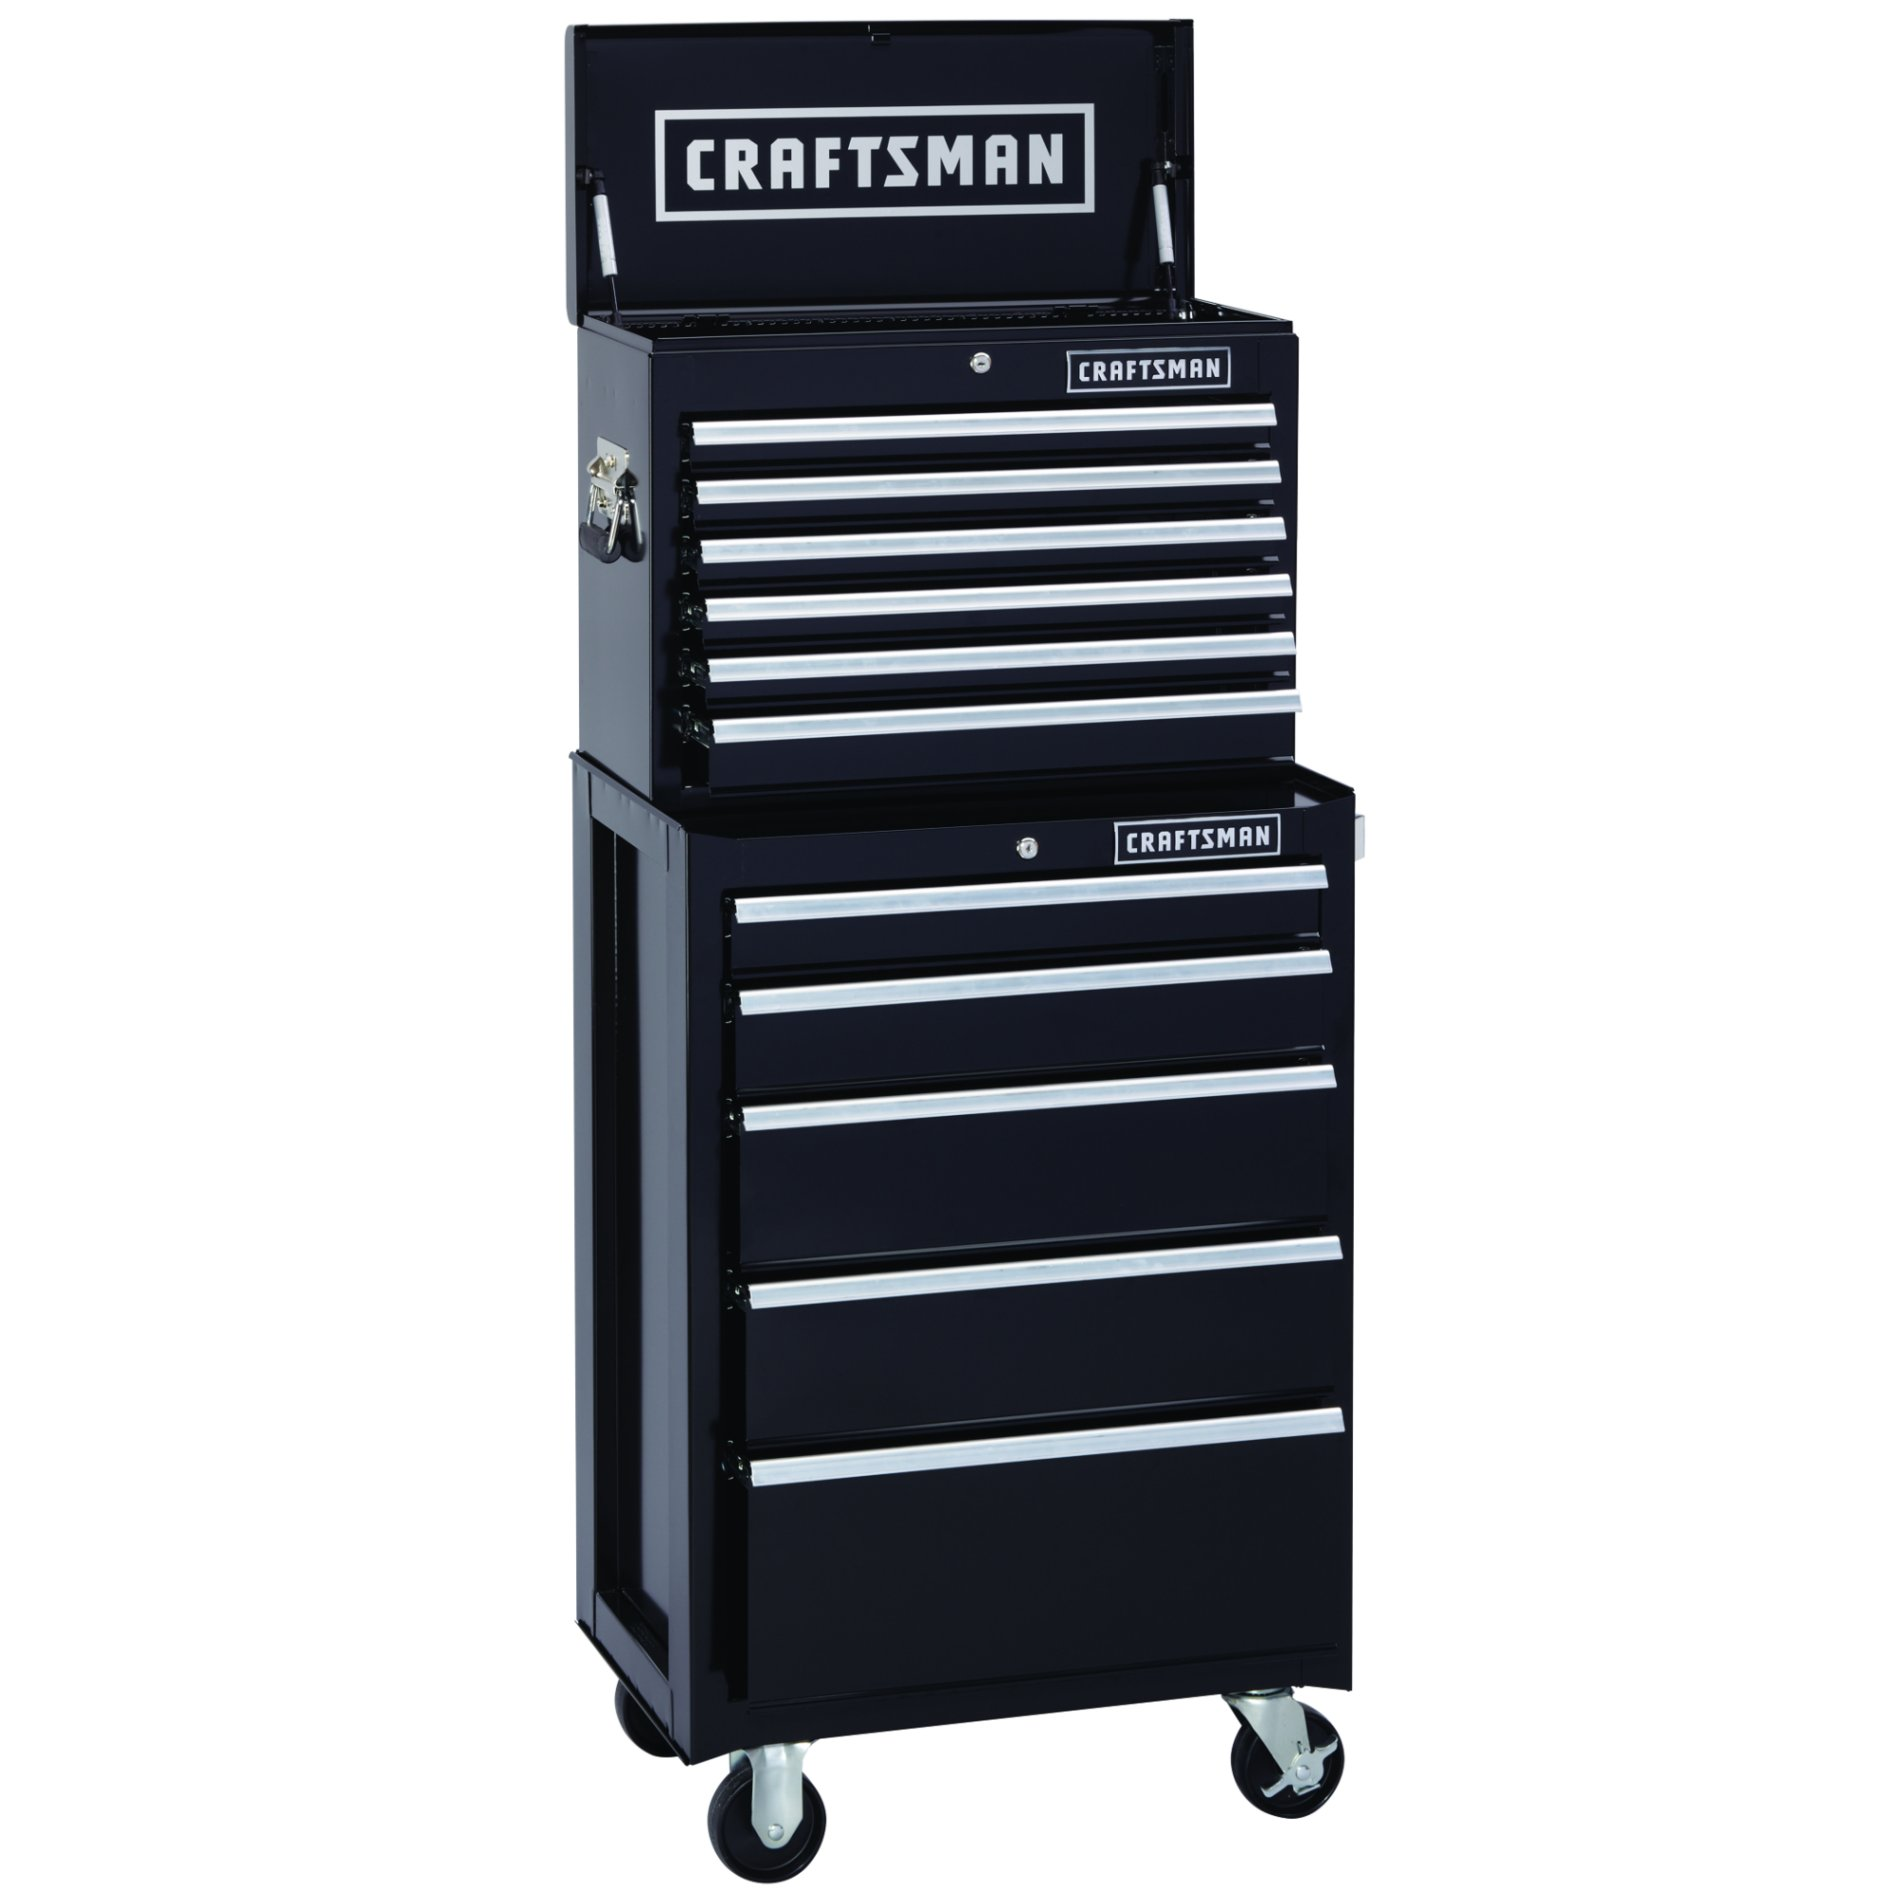 Craftsman 26.5 in. Wide 5 Drawer Bottom Chest, Black